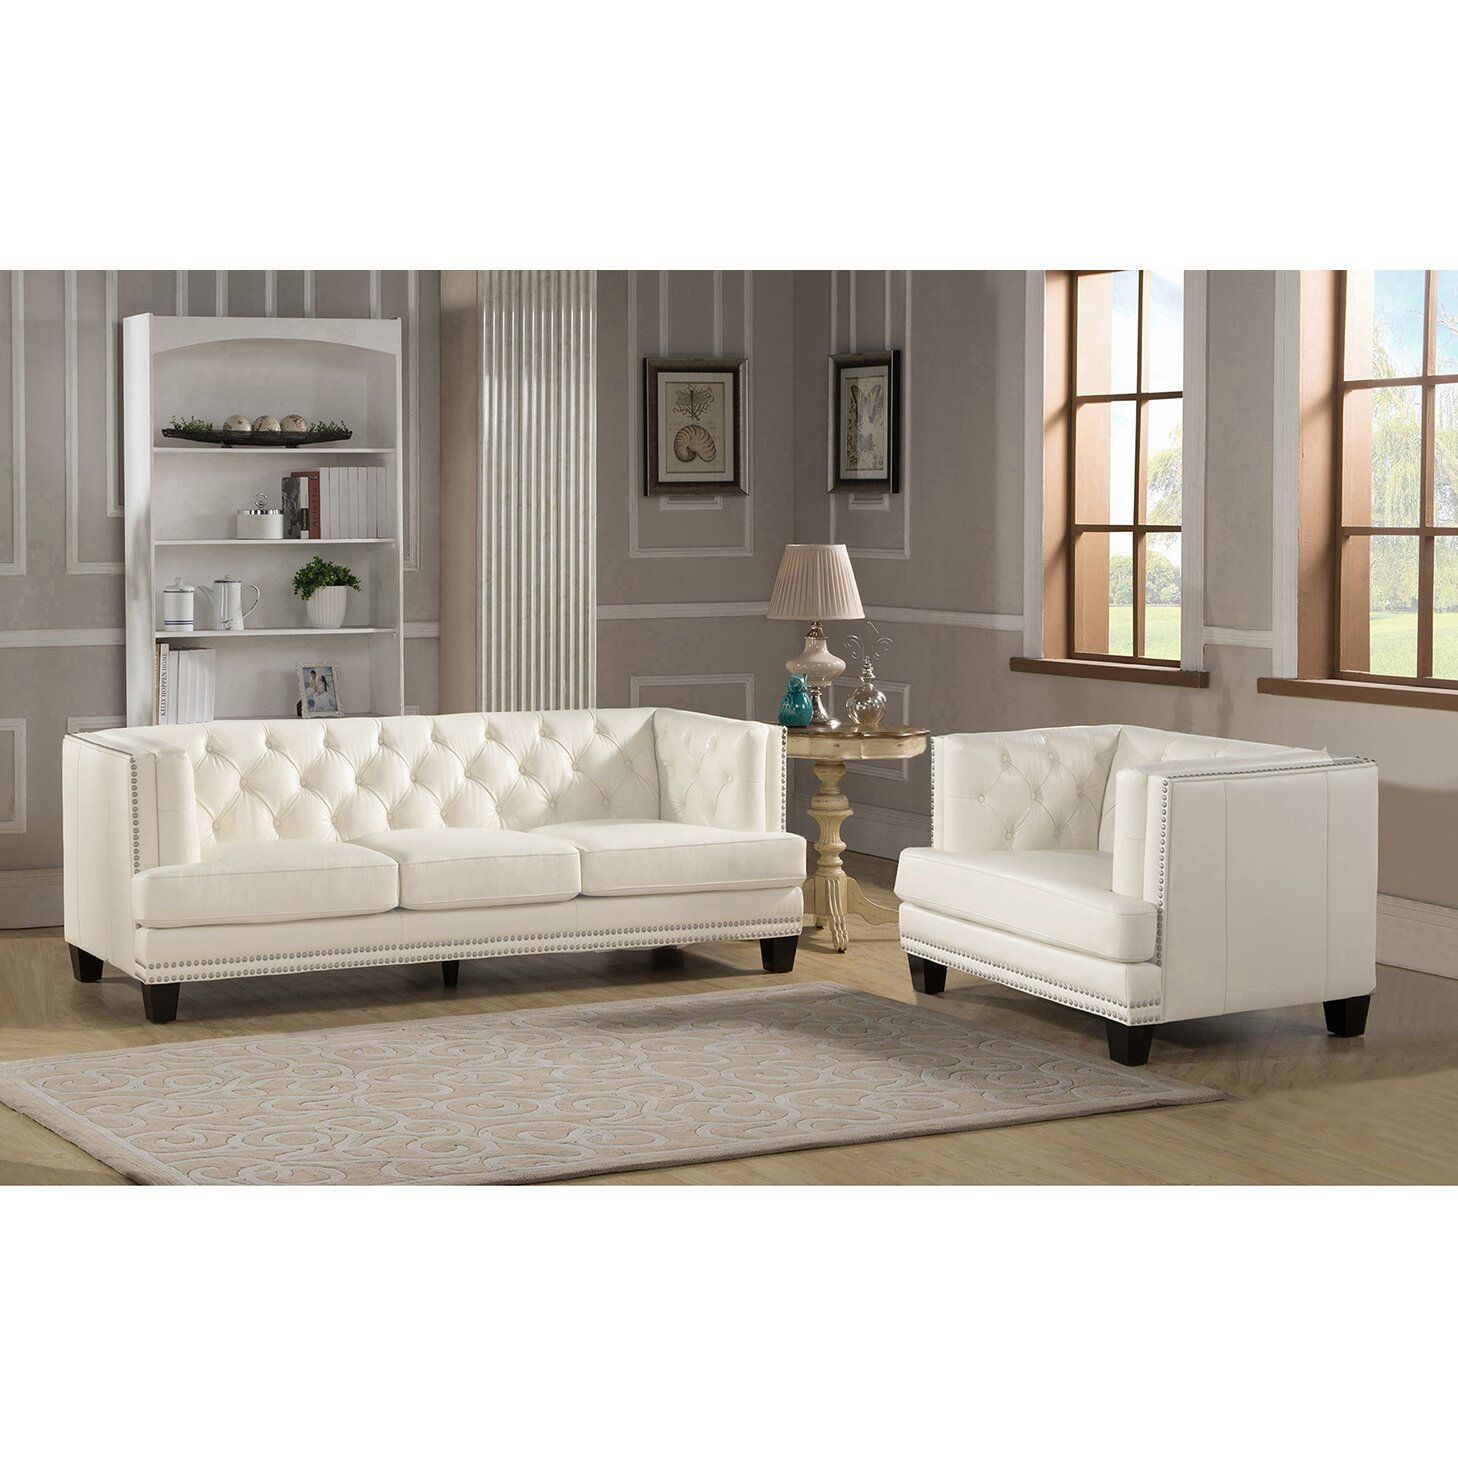 Newport 2 piece leather living room set wayfair